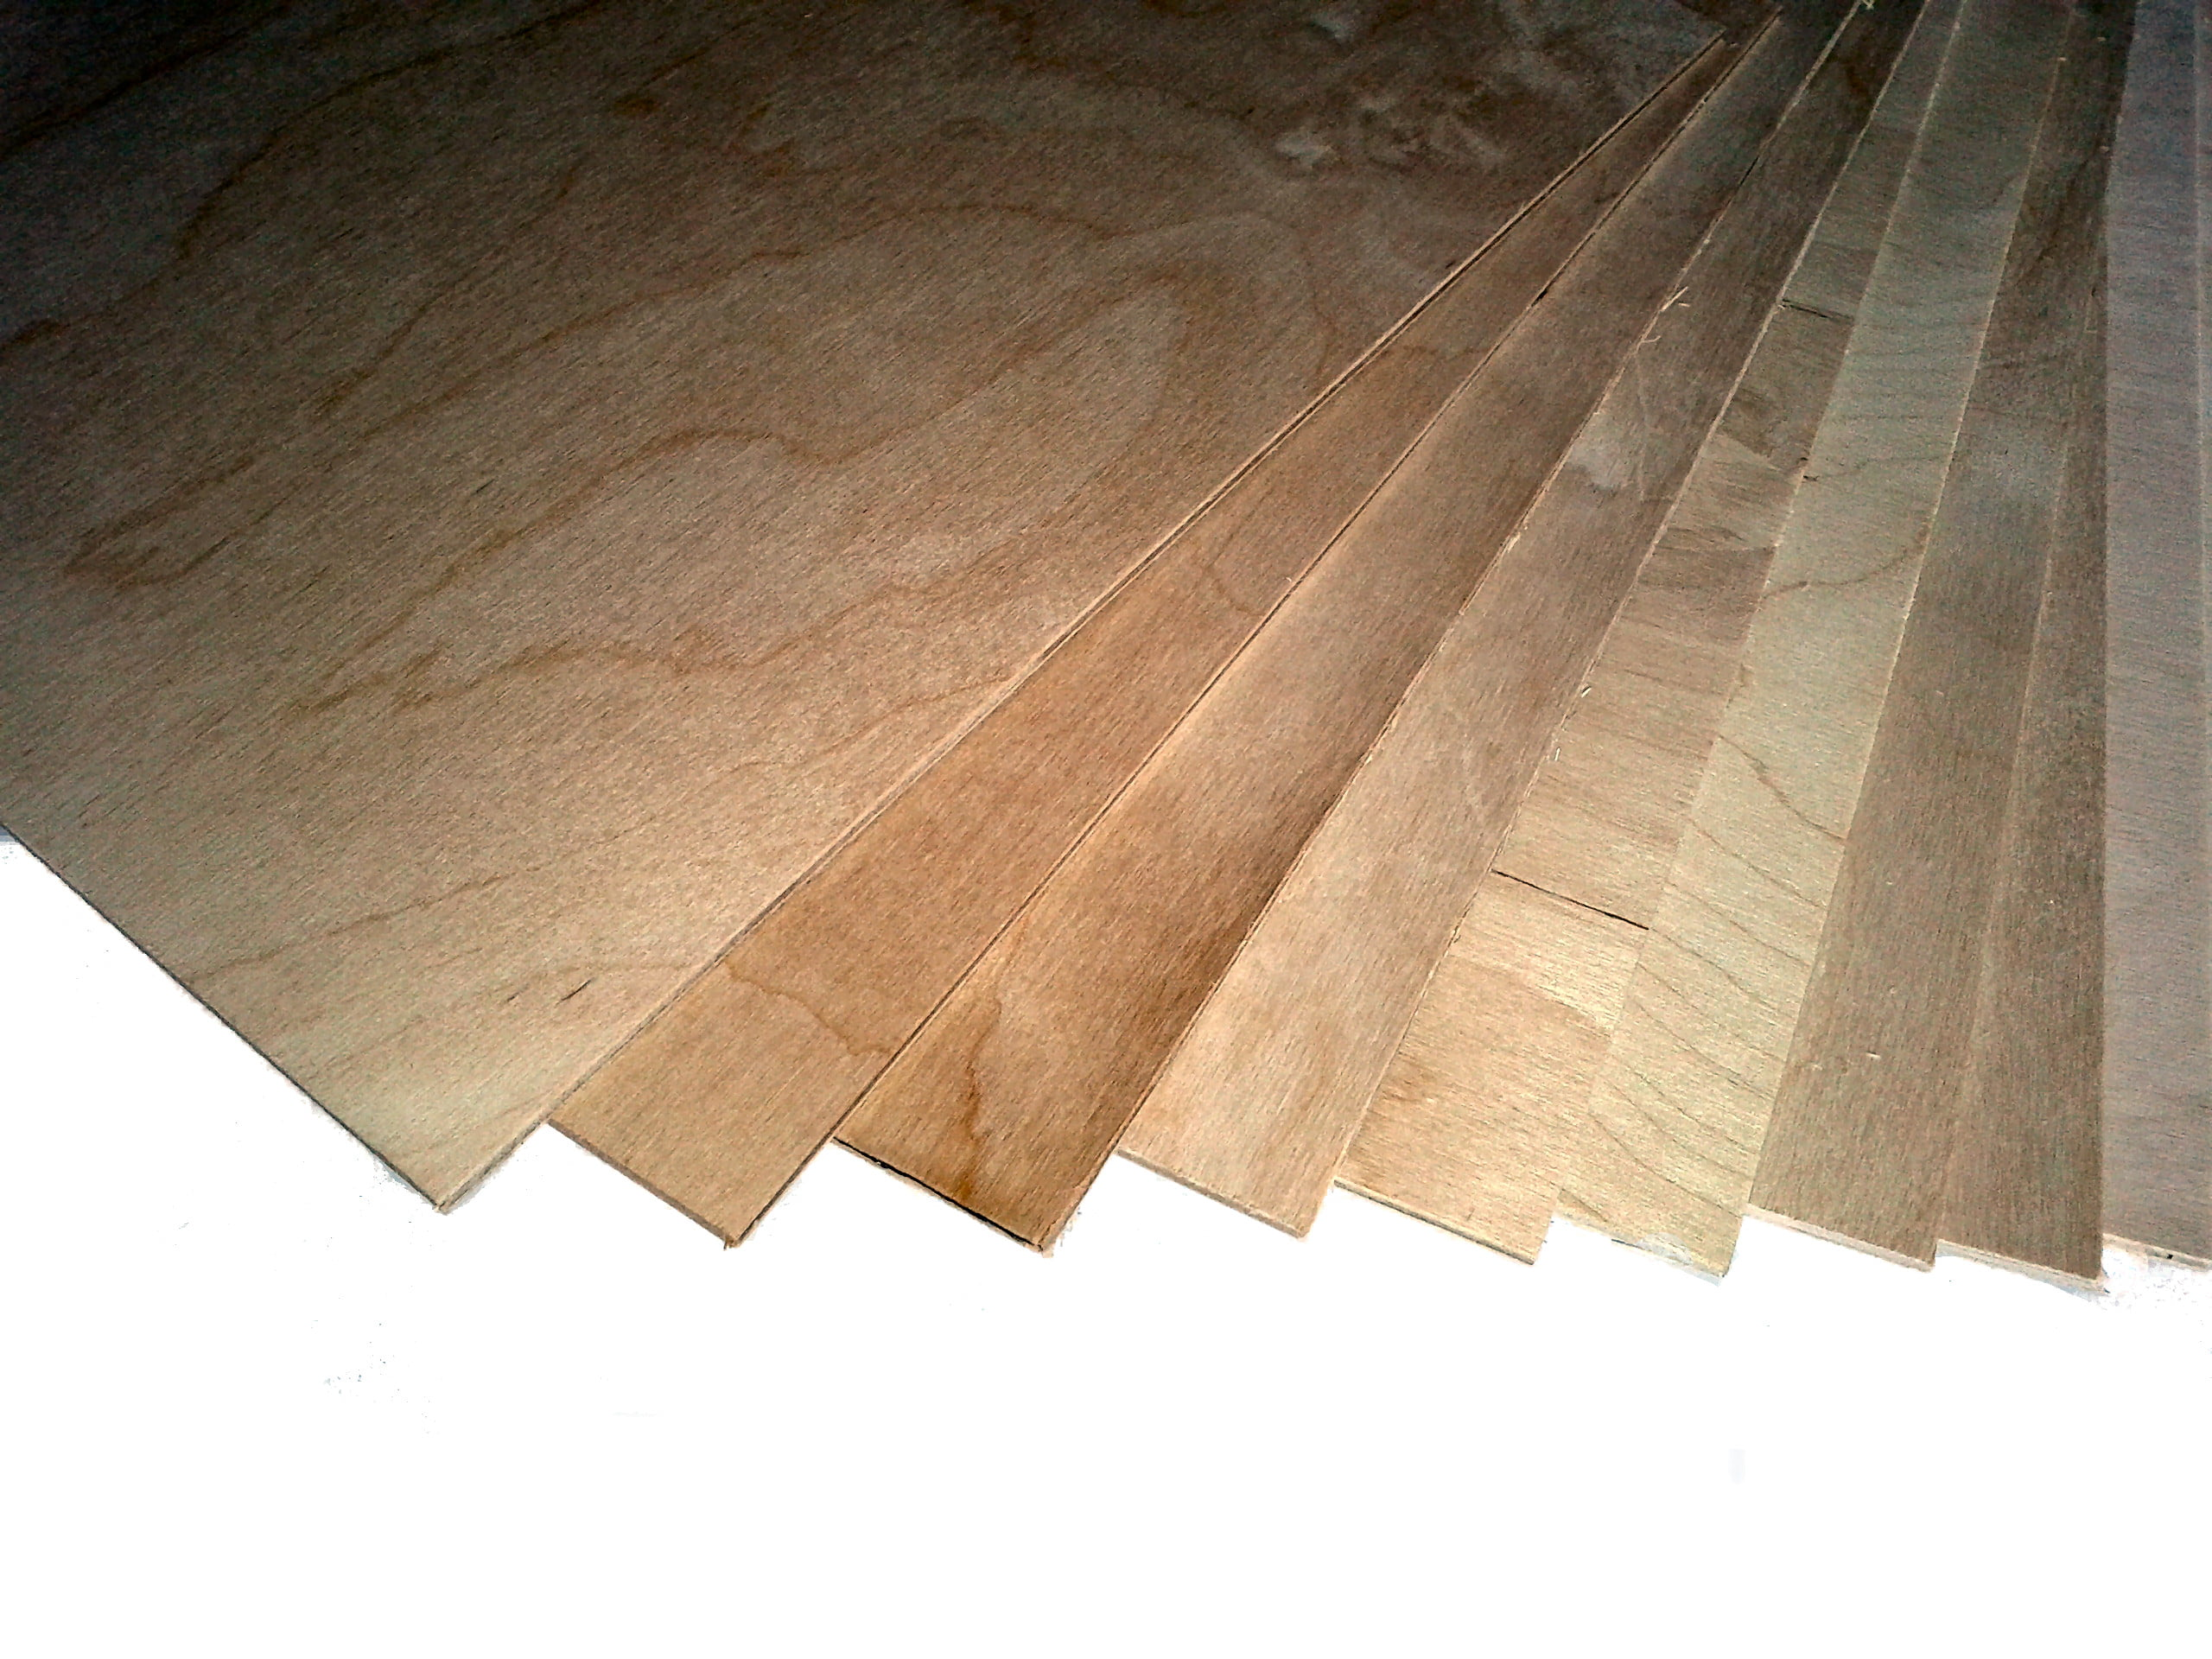 Quality birch plywood off cuts hobbies for Berch wood